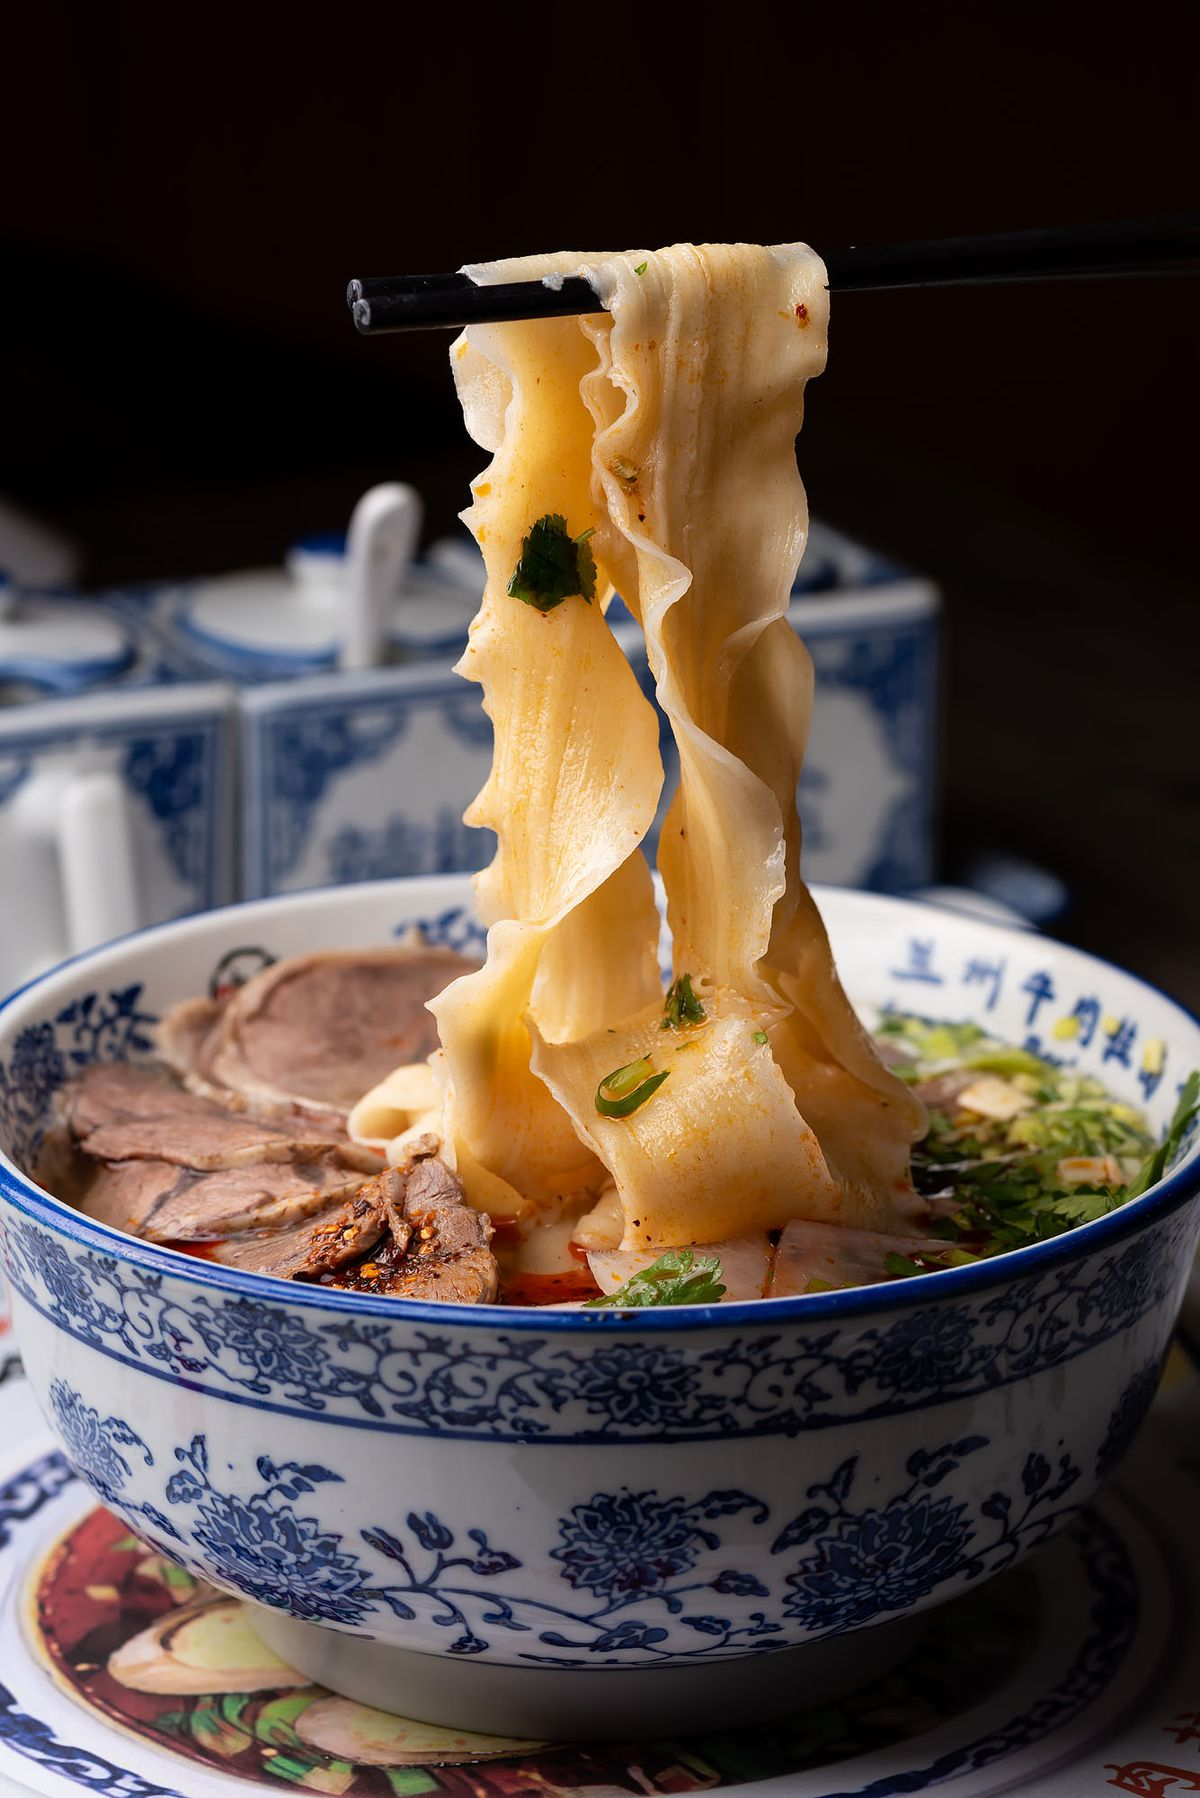 Wide noodles lifted up from a bowls of Lanzhou beef noodle soup with chopsticks.